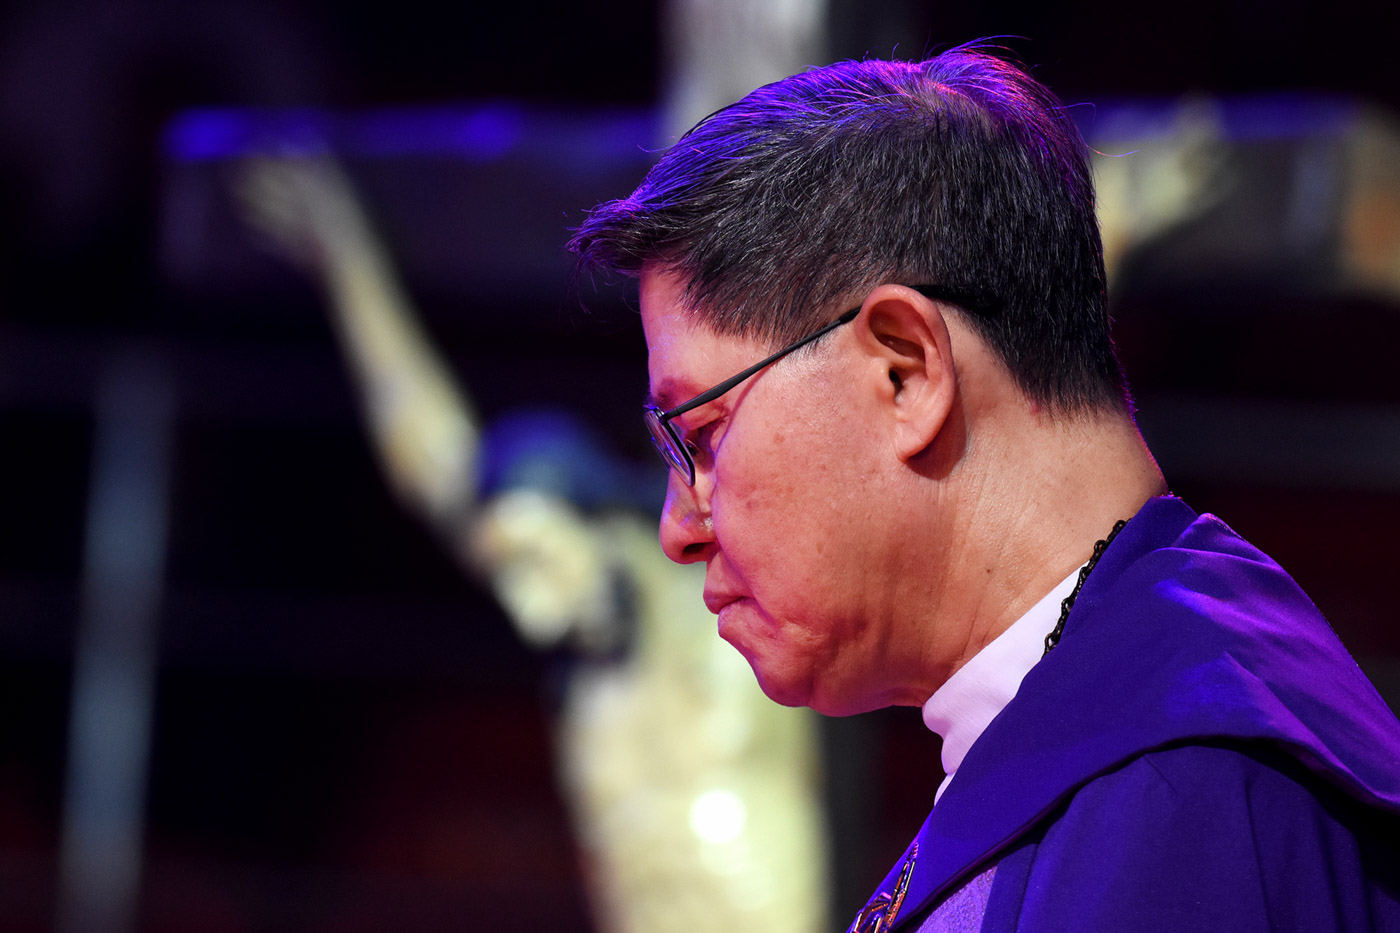 TYPHOON OMPONG. Manila Archbishop Luis Antonio Cardinal Tagle mobilizes help for Filipinos to be affected by Typhoon Ompong (Mangkhut). File photo by Angie de Silva/Rappler